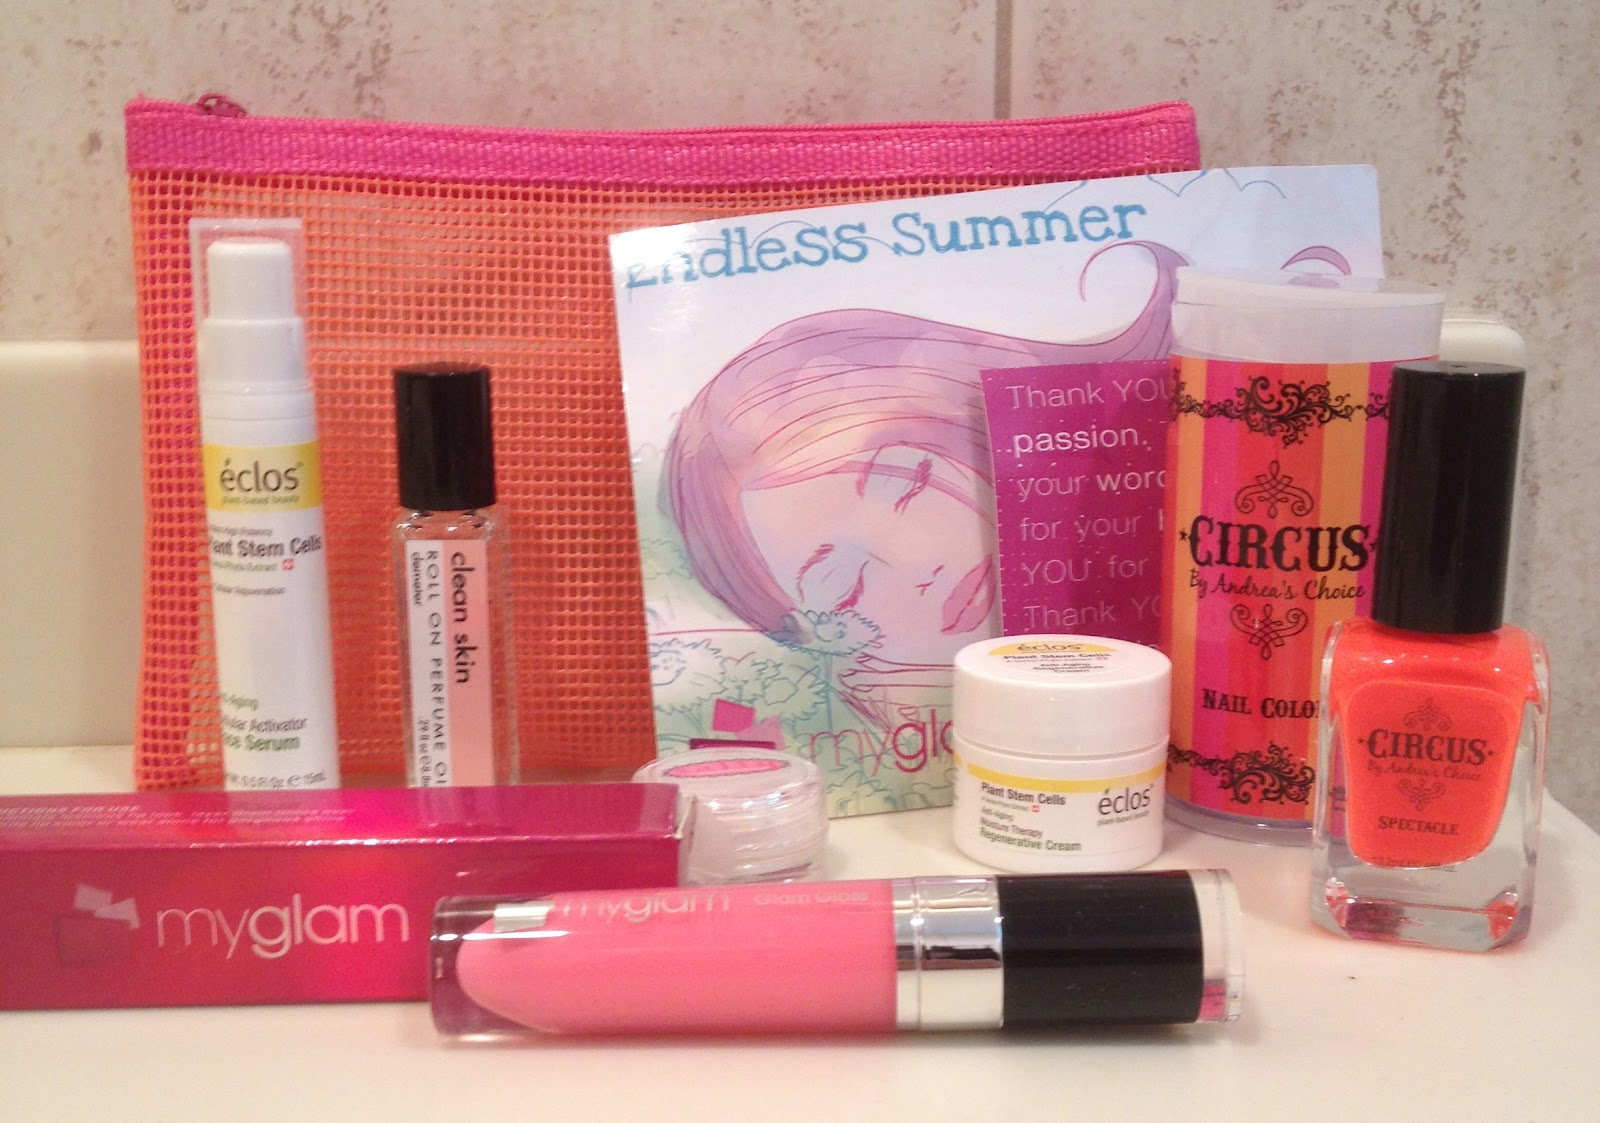 Join ipsy and subcribe to the glam bag!! Only $10 per month and you get 4-5 items of makeup at your doorstep! Follow me on http://www.ipsy.com. I'm emmyroo :p